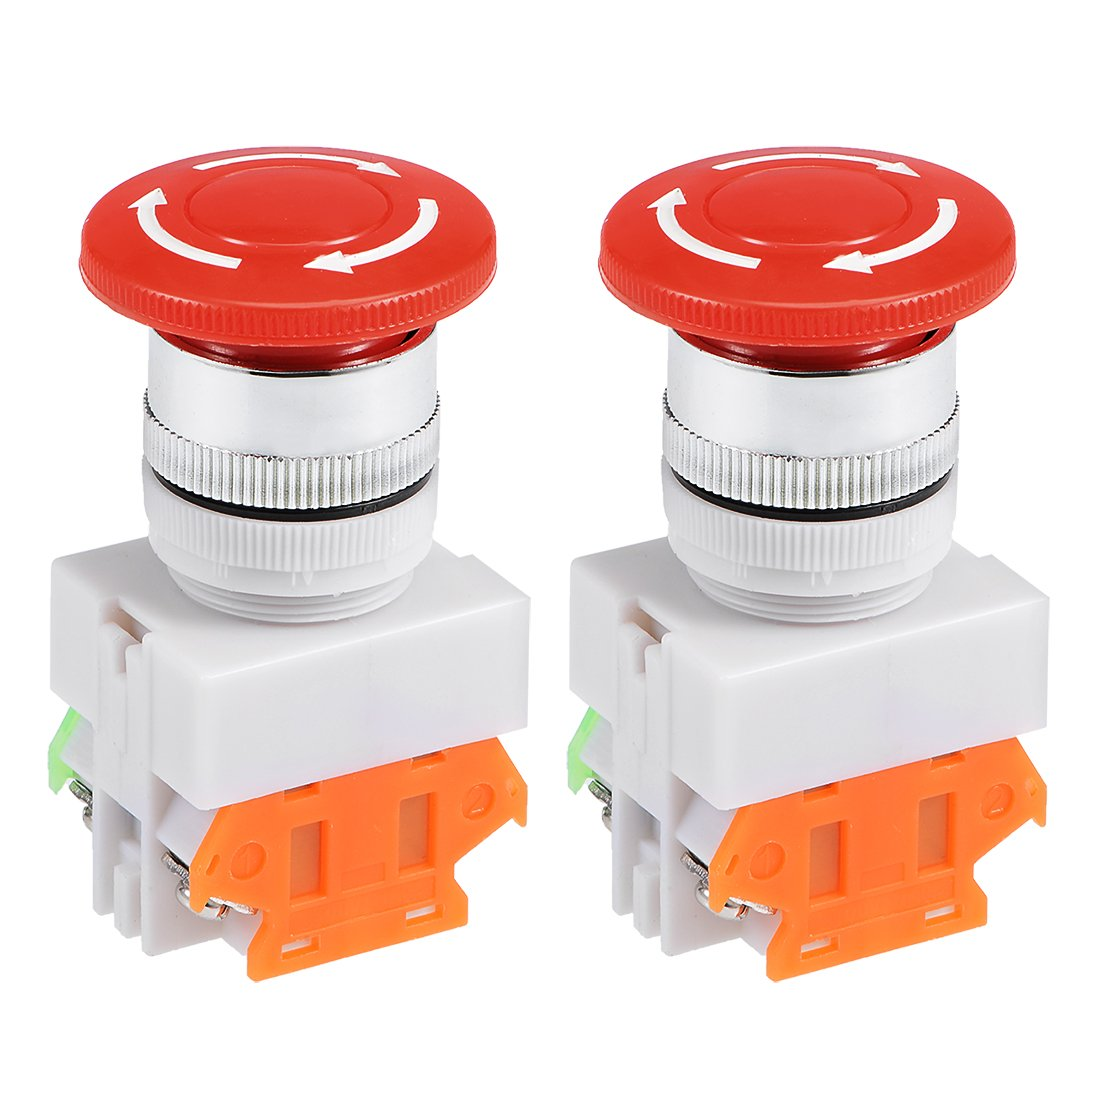 uxcell Latching Emergency Stop Push Button Switch AC 250V 0.5A 16mm Mounting Dia SPDT 1NO 1NC 4P Mushroom Head w warning tag